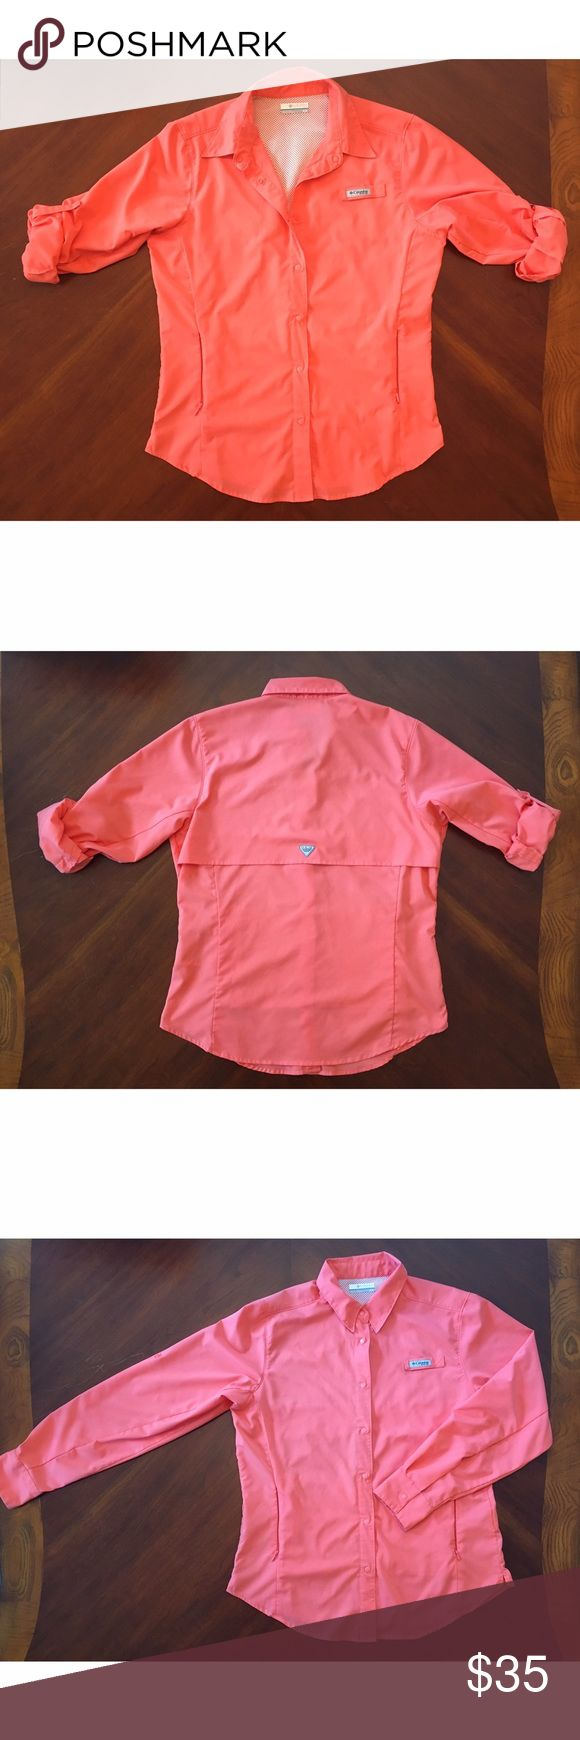 "Pink Columbia PFG Long Sleeve Shirt Columbia Sportswear Women's Tamiami™ Long Sleeve Shirt. Size M. Never worn. Color is named ""Red medium"" but it's really a salmon pink color. Super cute, very sporty! A great preppy look. UPF 40 for protection against UVA/UVB rays. Lightweight fabric. Zippered pockets. Mesh-lined for great airflow. Bought from a sporting goods store but never worn. Make an offer!! *will sell for less on Merc* Columbia Tops Button Down Shirts"